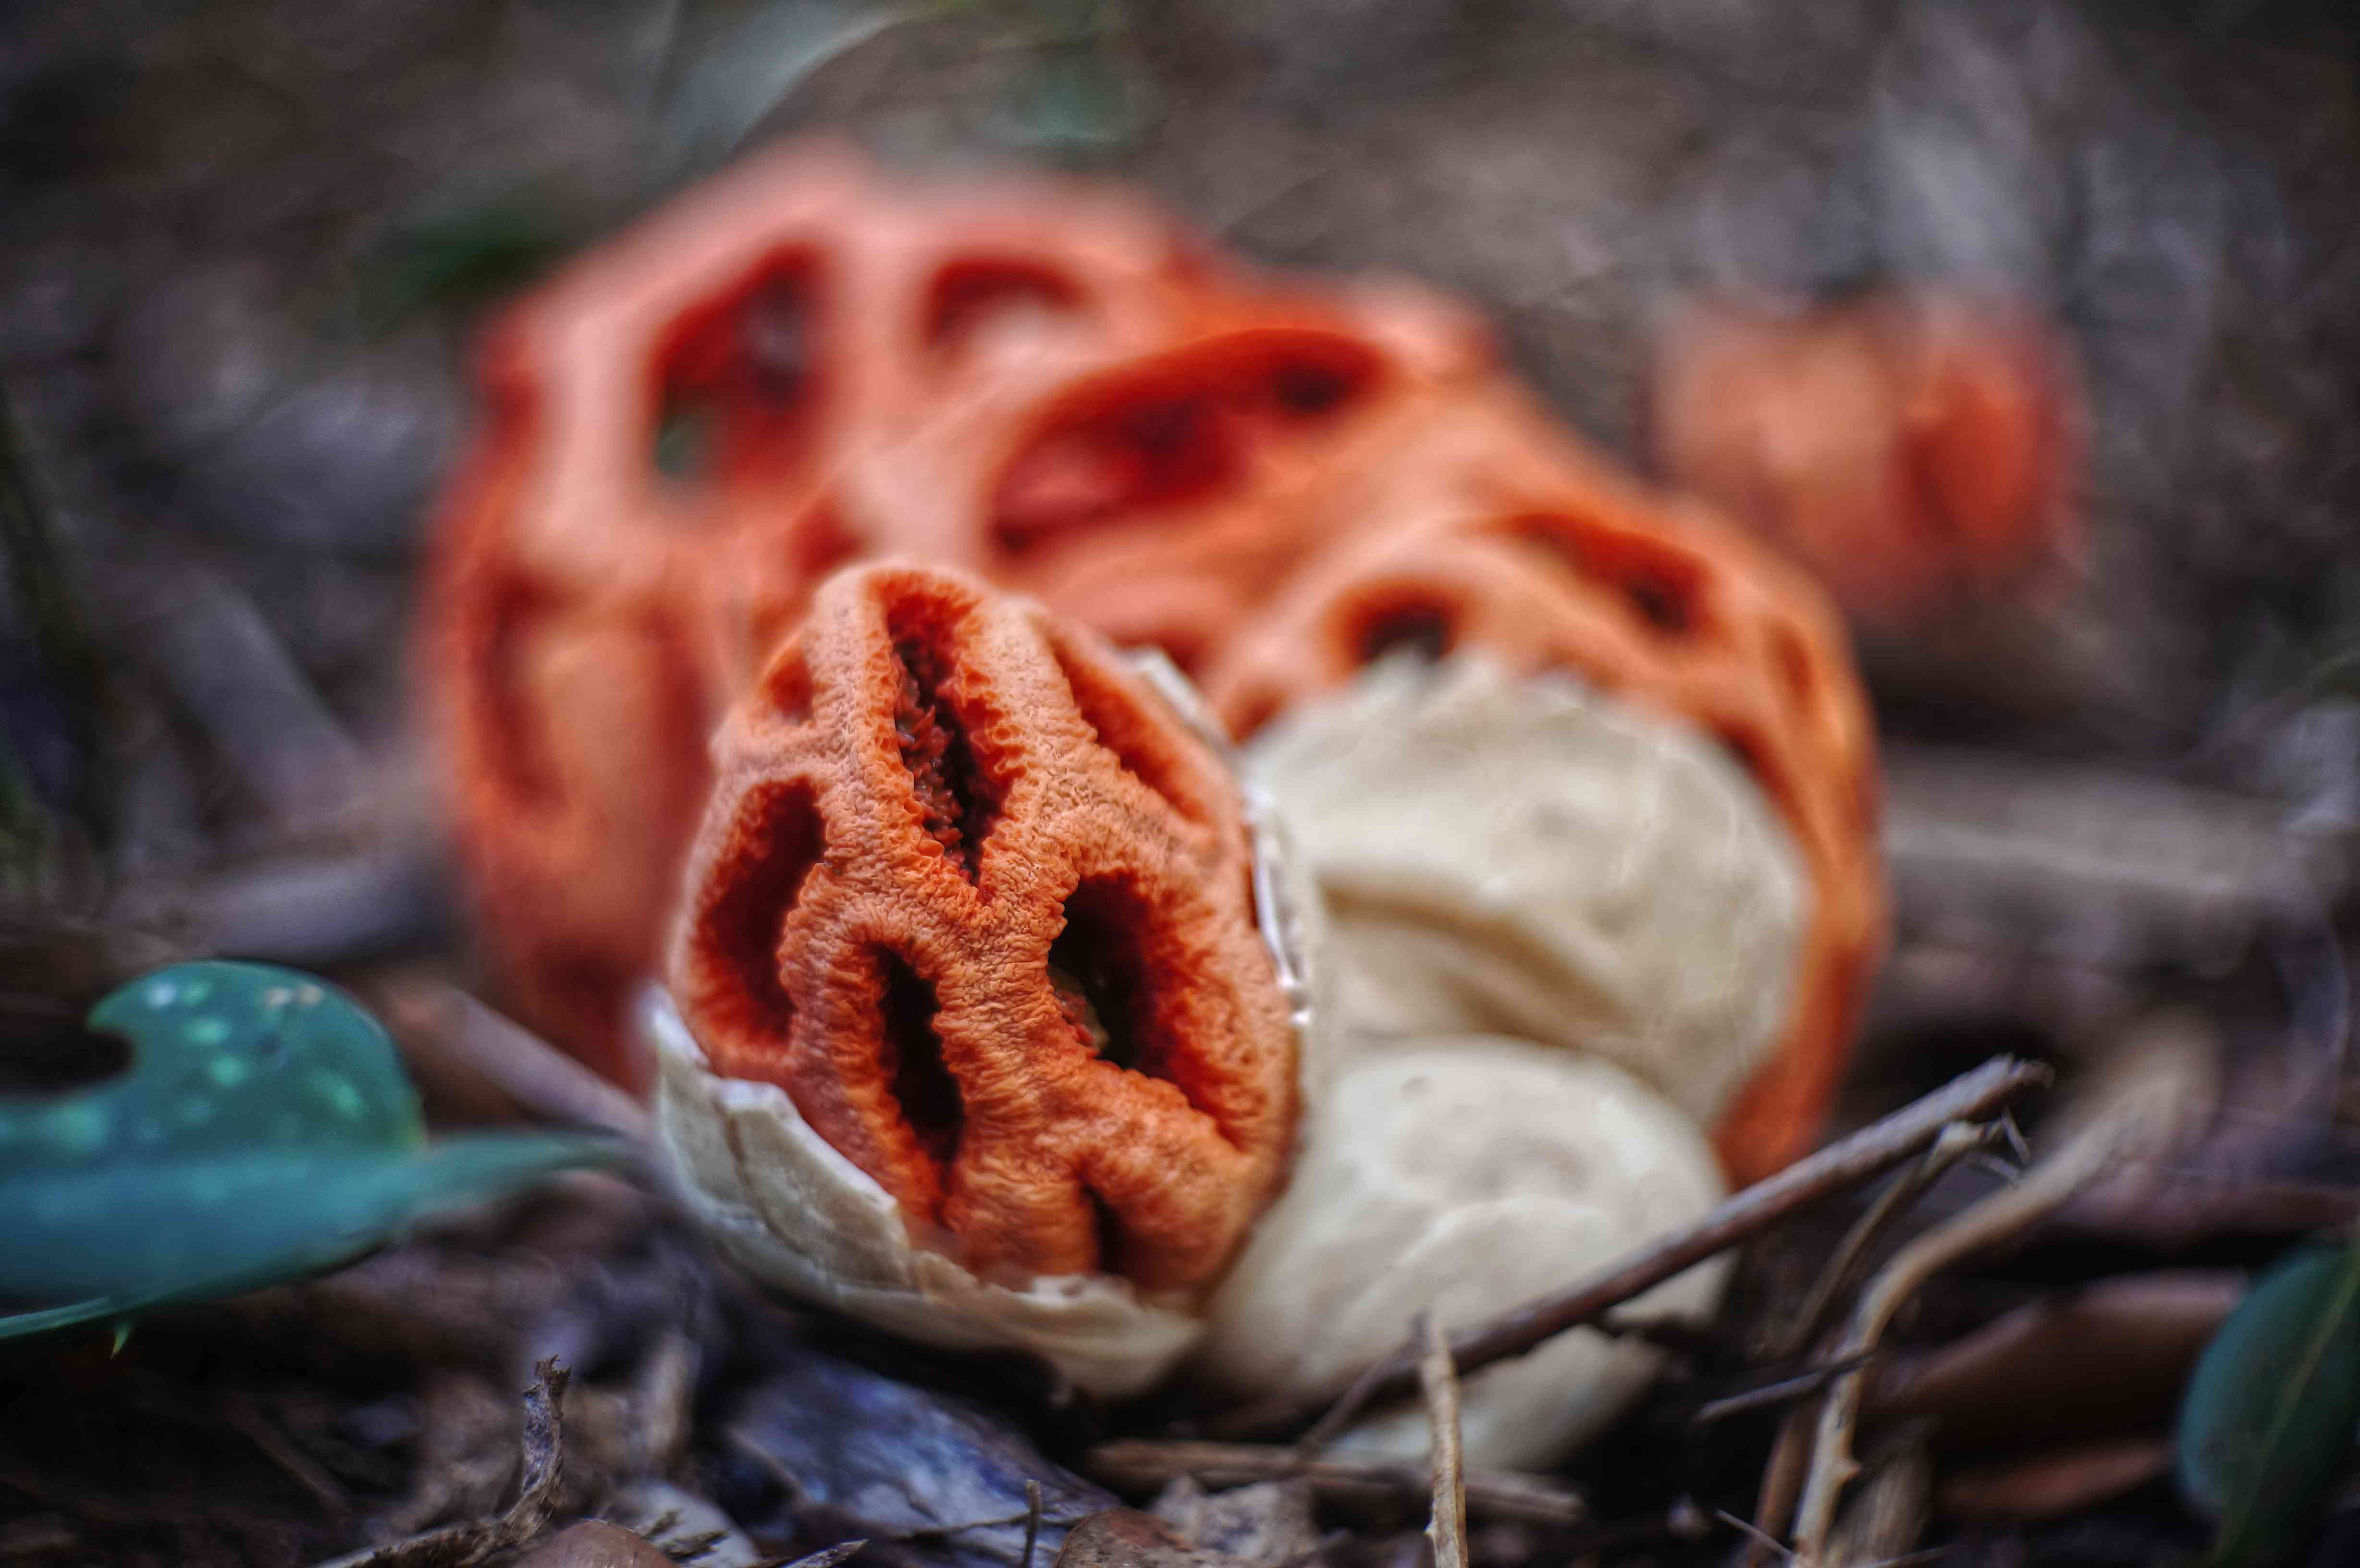 Close-up of a red latticed stinkhorn mushroom growing from ground